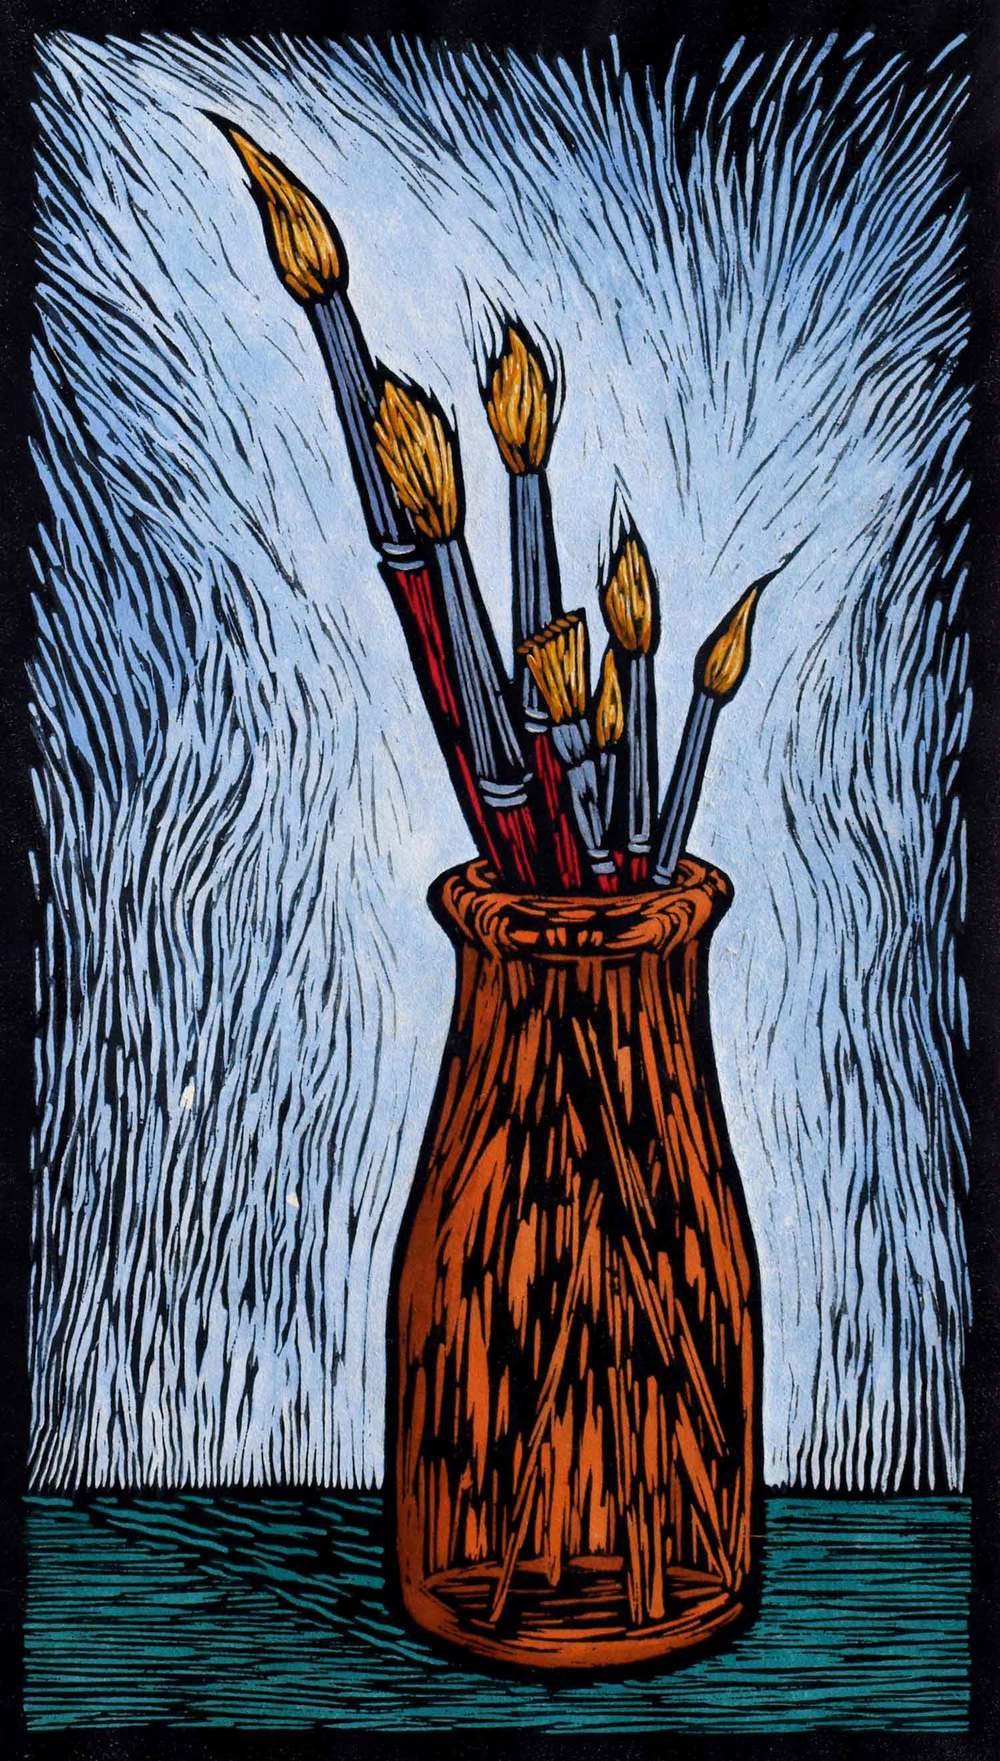 PAINT BRUSHES 35 X 19.5 CM    EDITION OF 50 HAND COLOURED LINOCUT ON HANDMADE JAPANESE PAPER $550